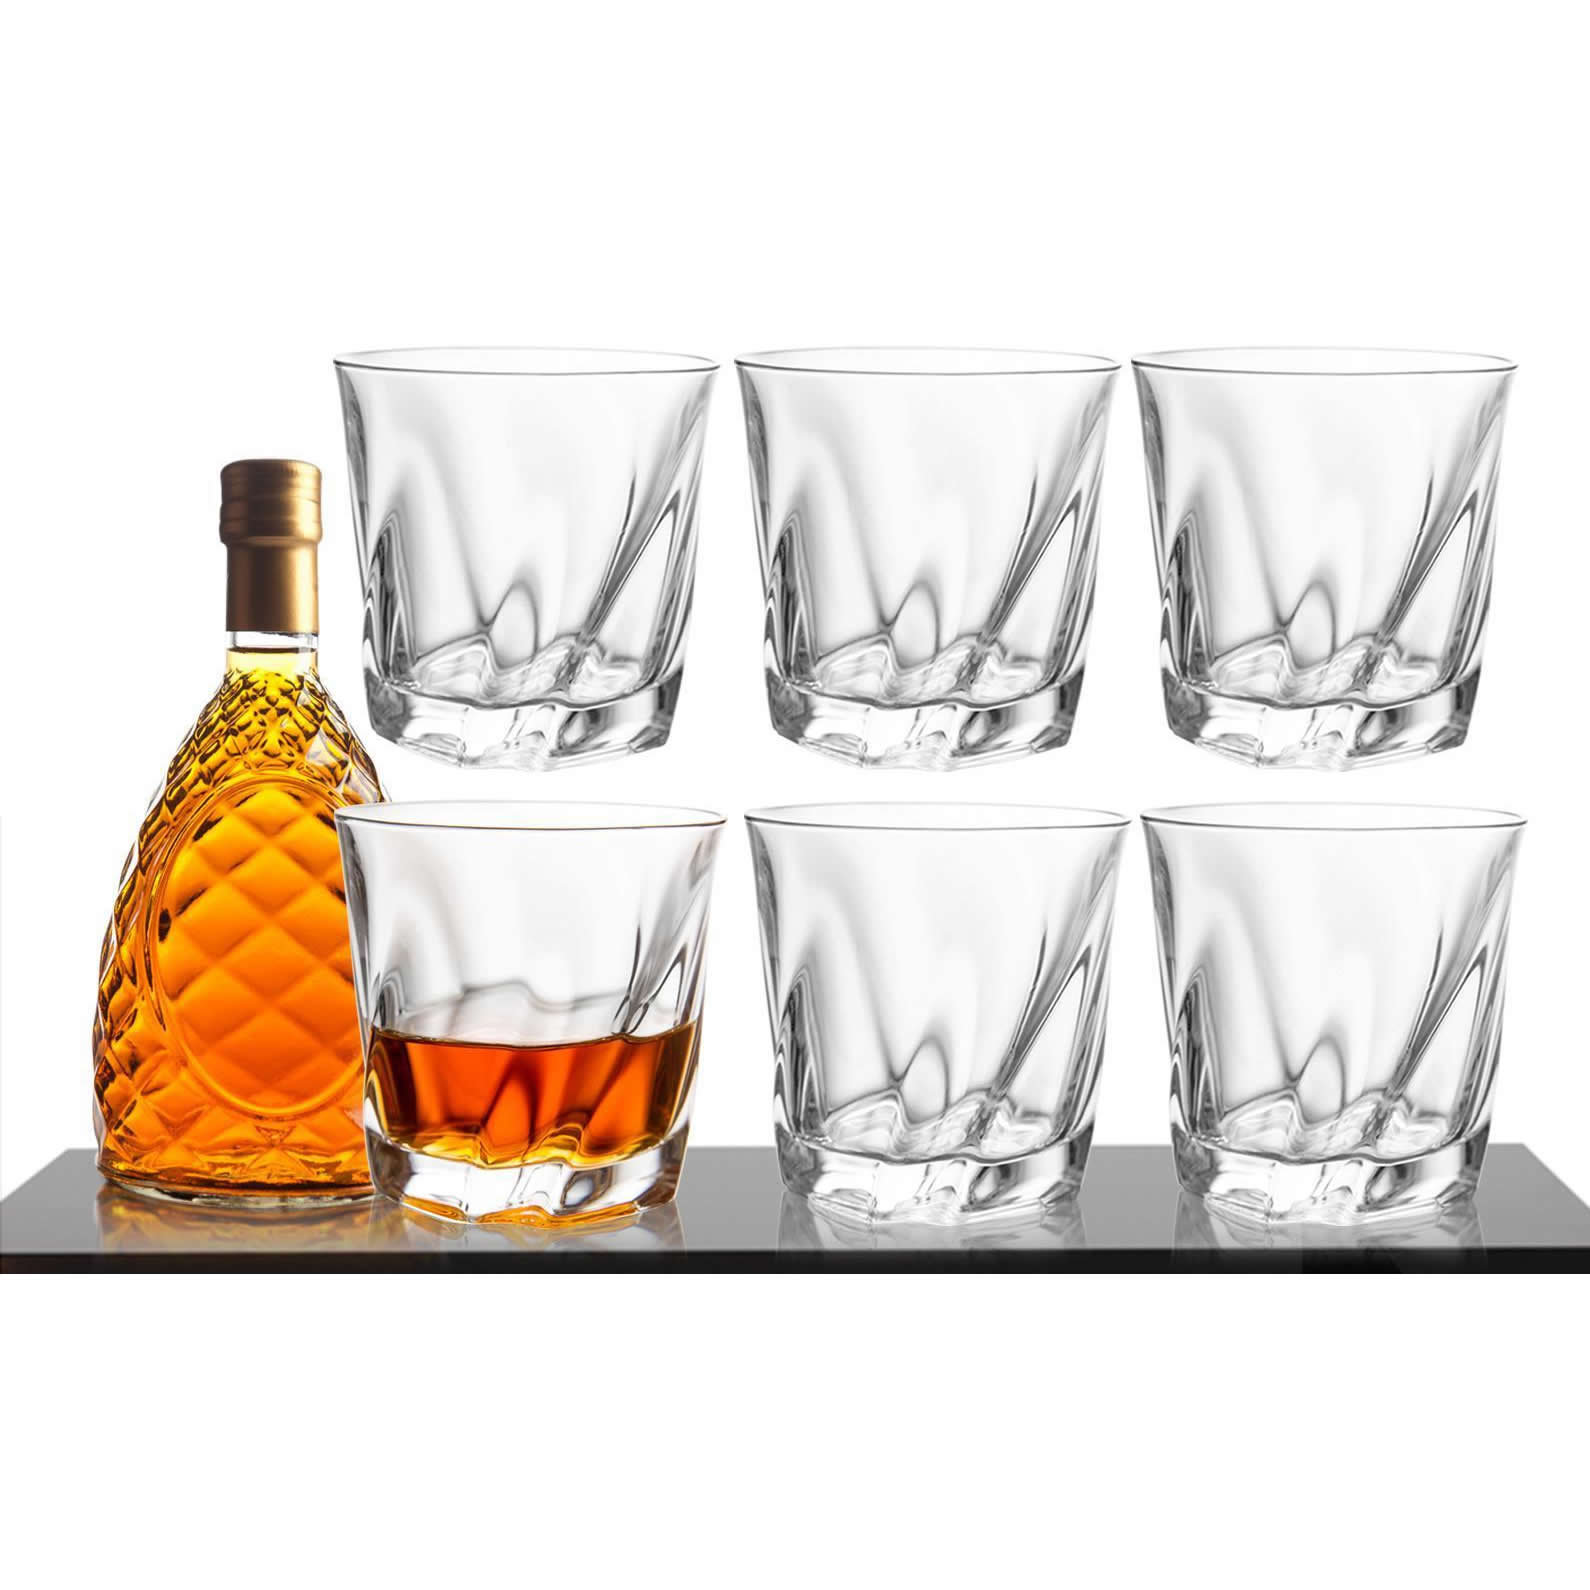 verres a whisky cristal d arques. Black Bedroom Furniture Sets. Home Design Ideas